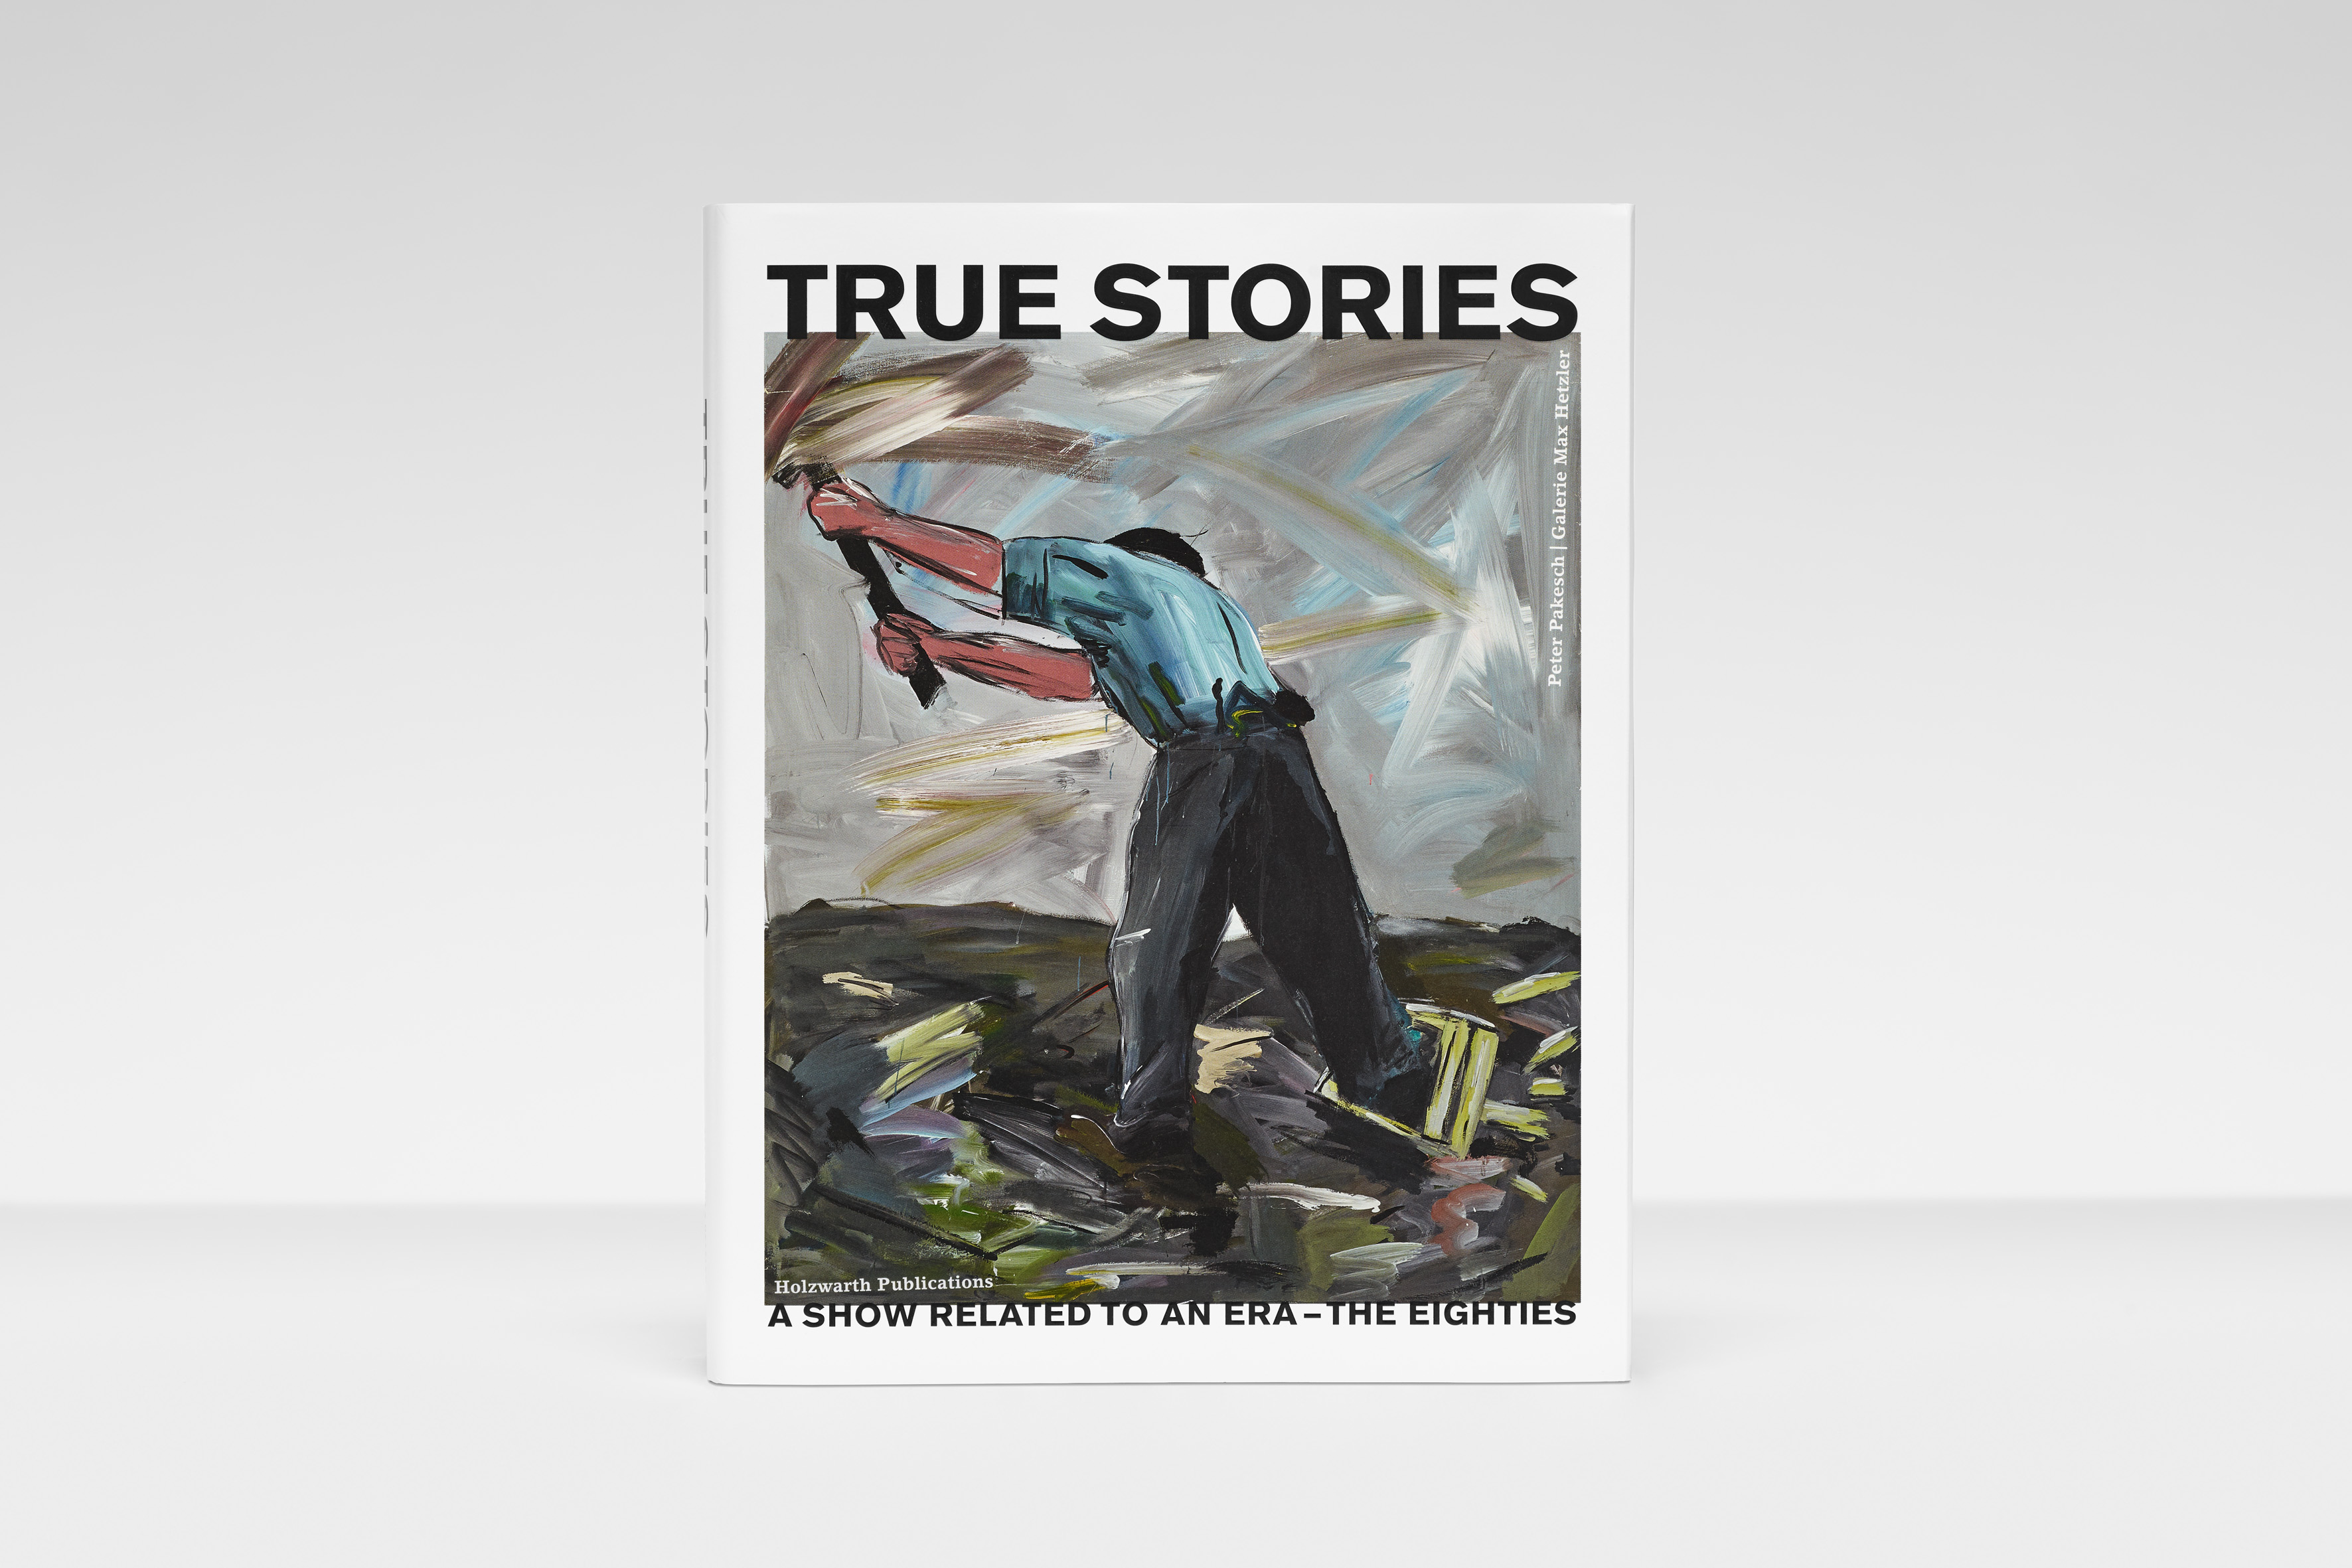 True Stories. A Show Related to an Era – The Eighties - Galerie Max Hetzler